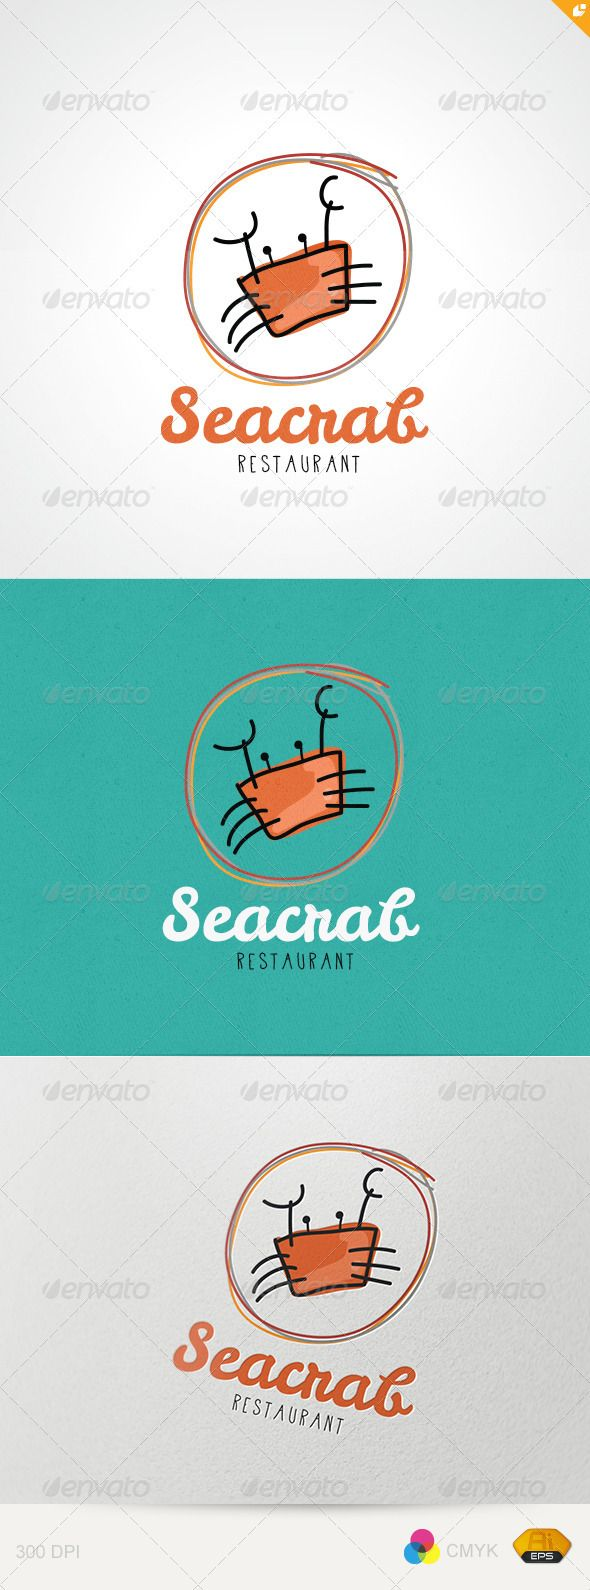 Sea Crab Restaurant  #GraphicRiver          Sea Crab Restaurant – Logo Template  This logo design for dinning,crab food and restaurant or creative business.  Logo Template Features   EPS (Illustrator 10 EPS ) 300PPI  CMYK   100% Scalable Vector Files  Easy to edit color / text  Ready to print  Free font used  Leckerli One     APD      If you buy and like this logo, please remember to rate it. Thanks!